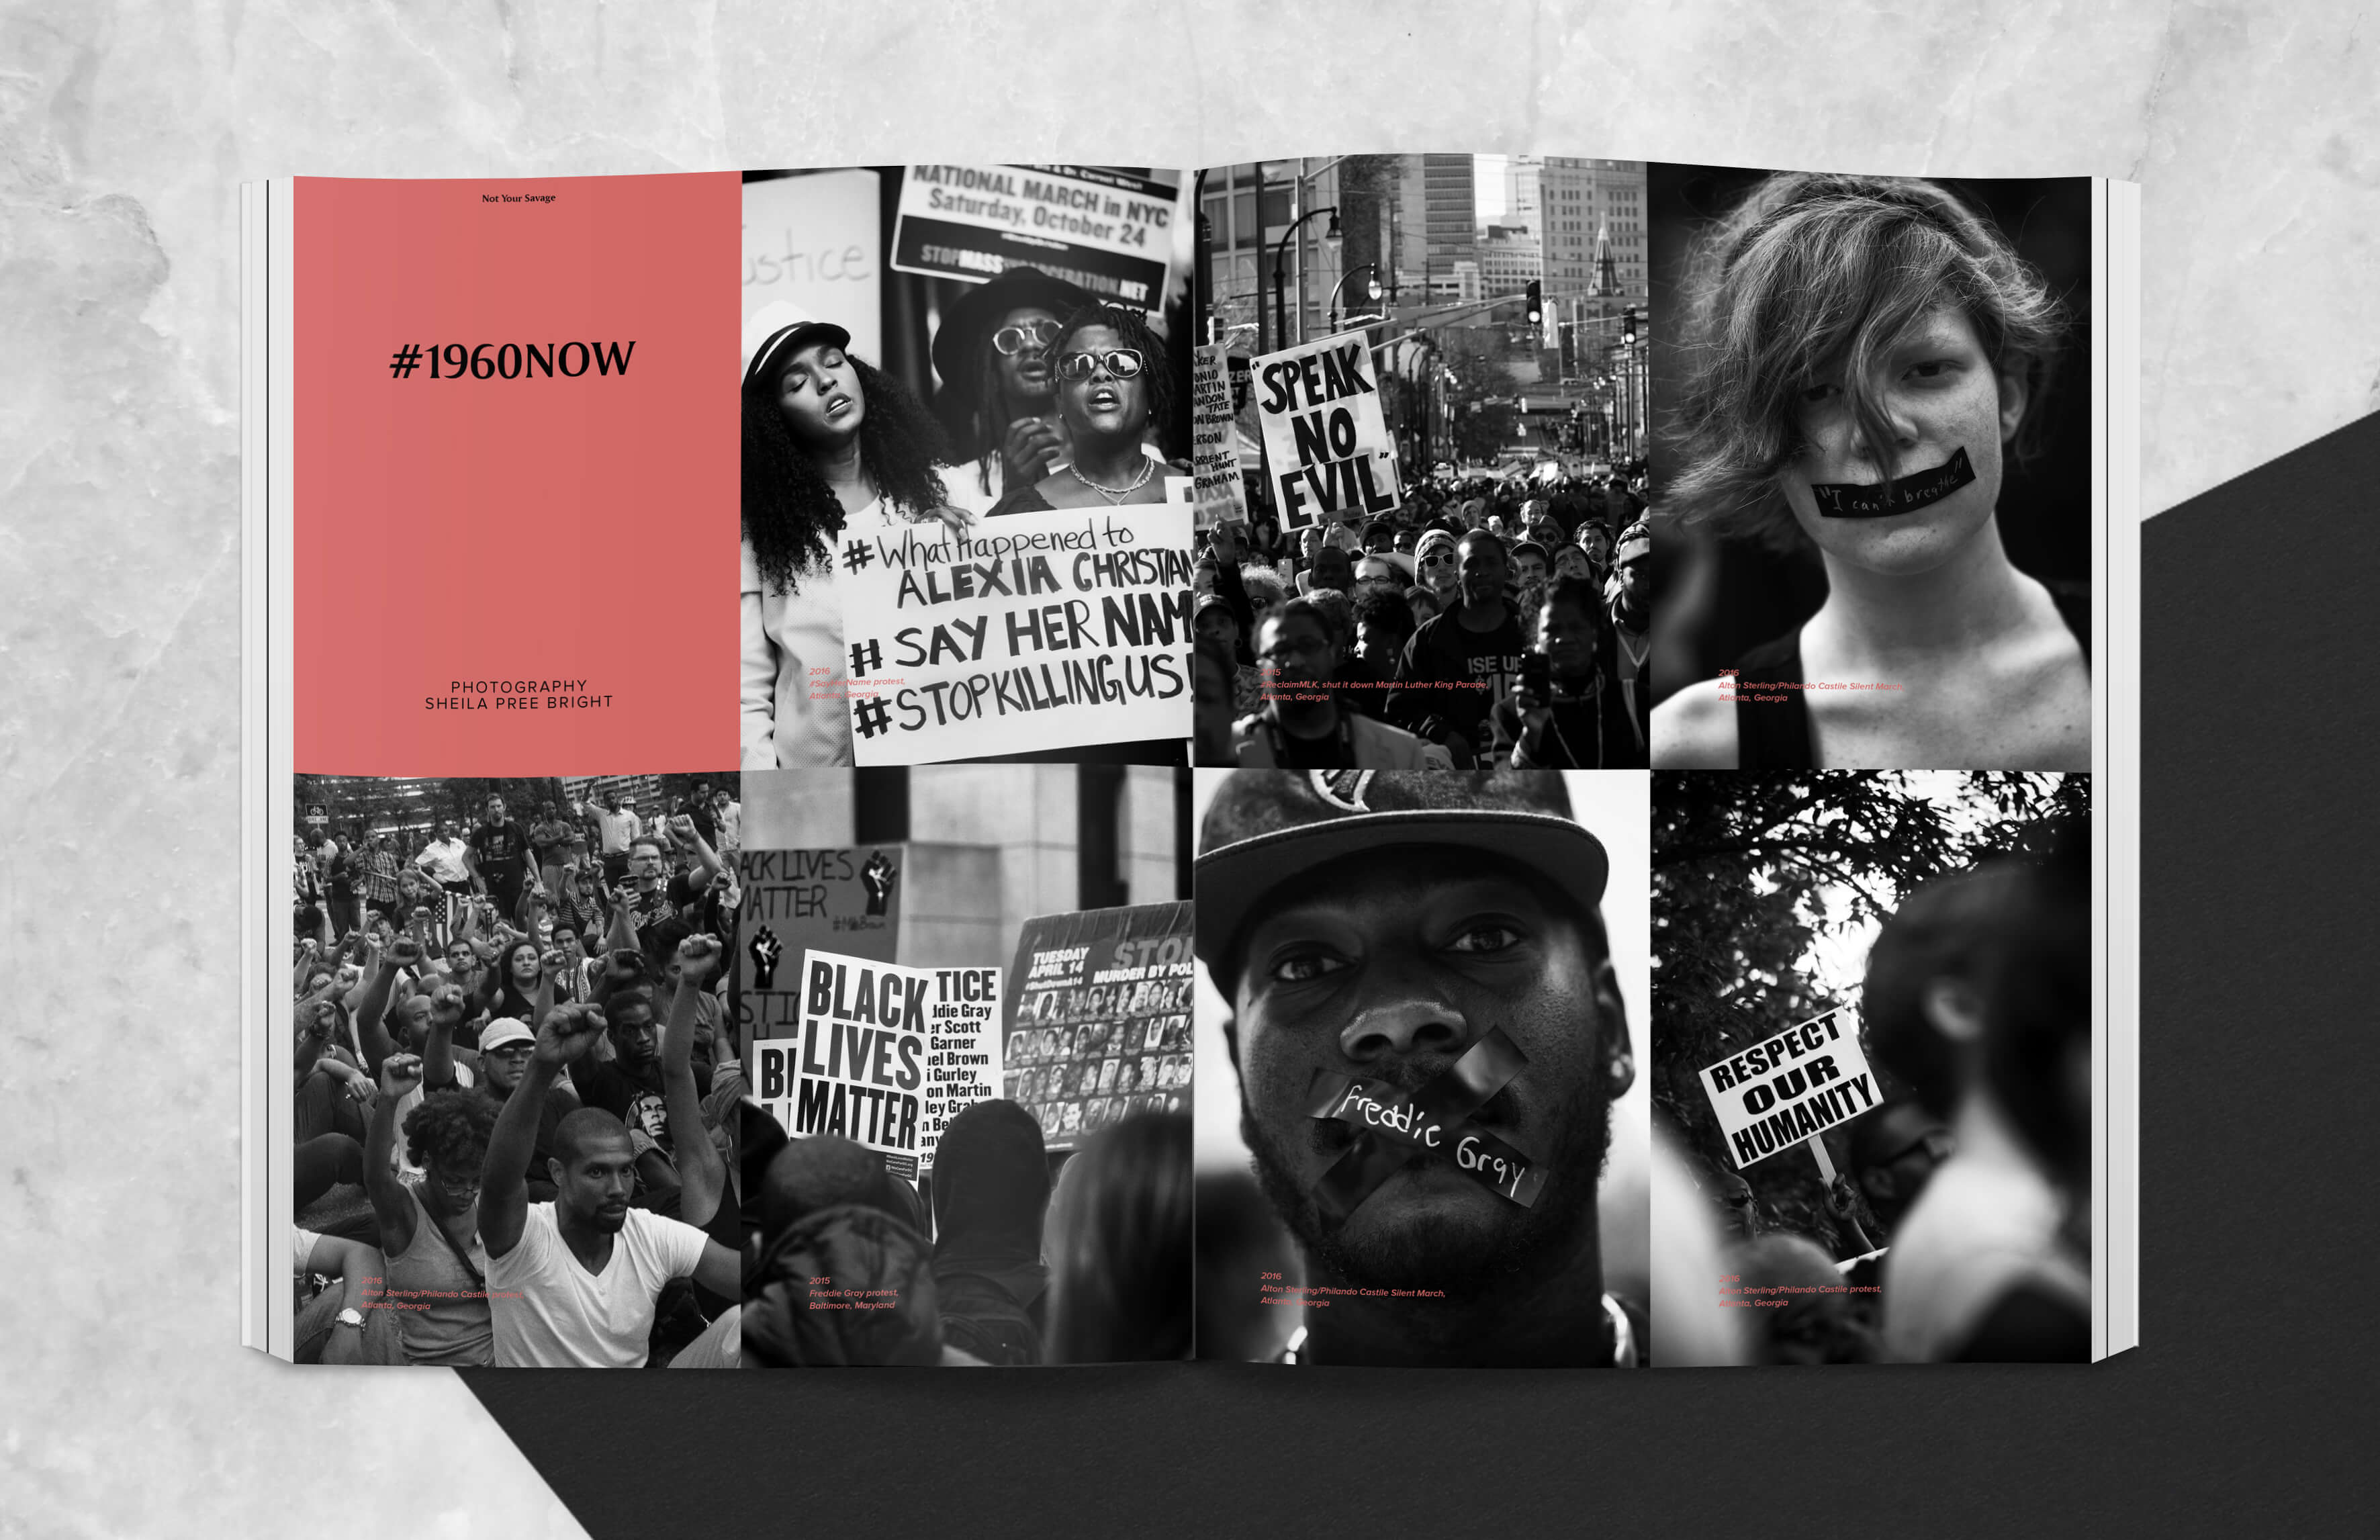 Magazine spread showing Black Lives Matter demonstrations